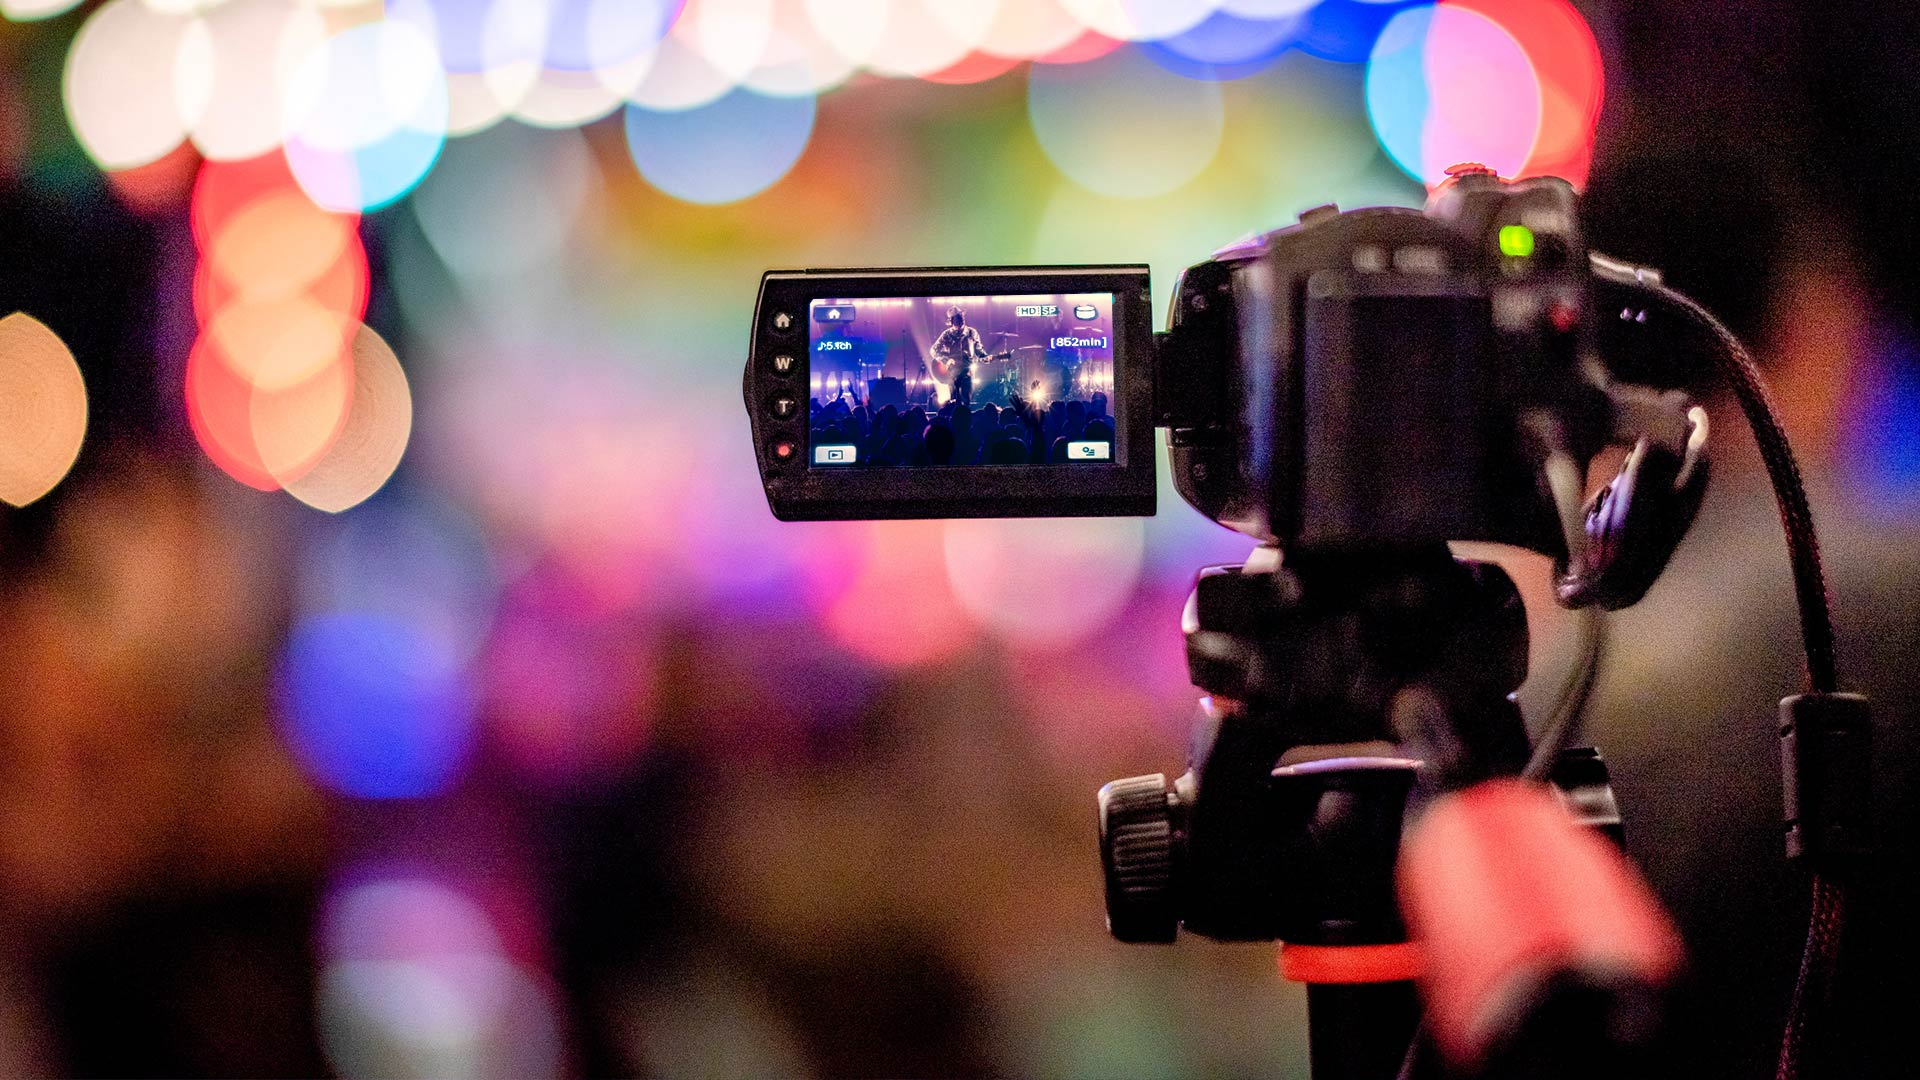 10 Questions & Answers About Streaming That You Need To Know Before Going Live